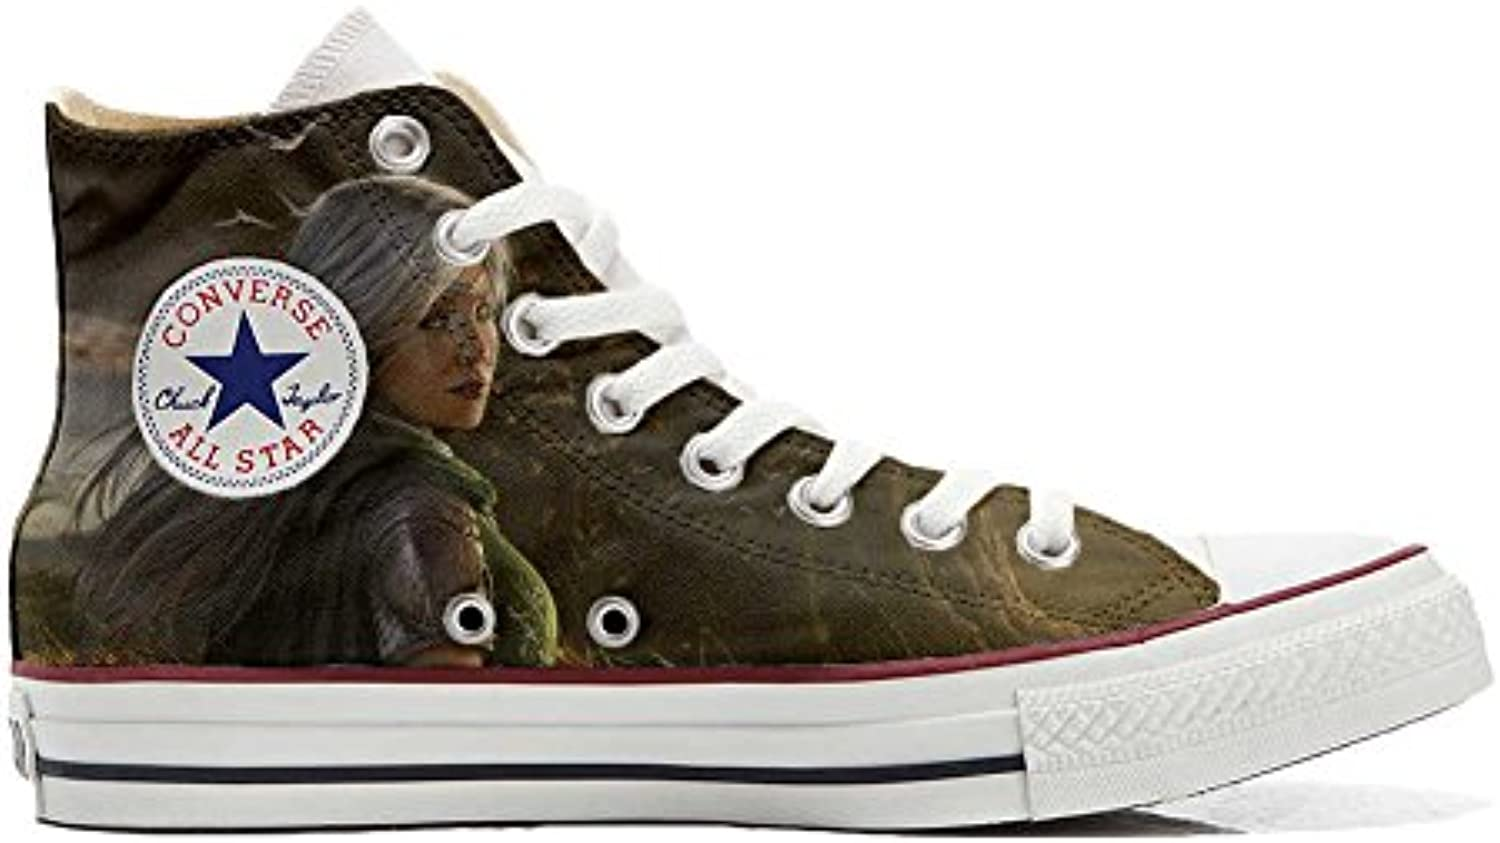 Converse All Star Customized - Zapatos Personalizados (Producto Artesano) Tigre Blanco with Green Eyes -